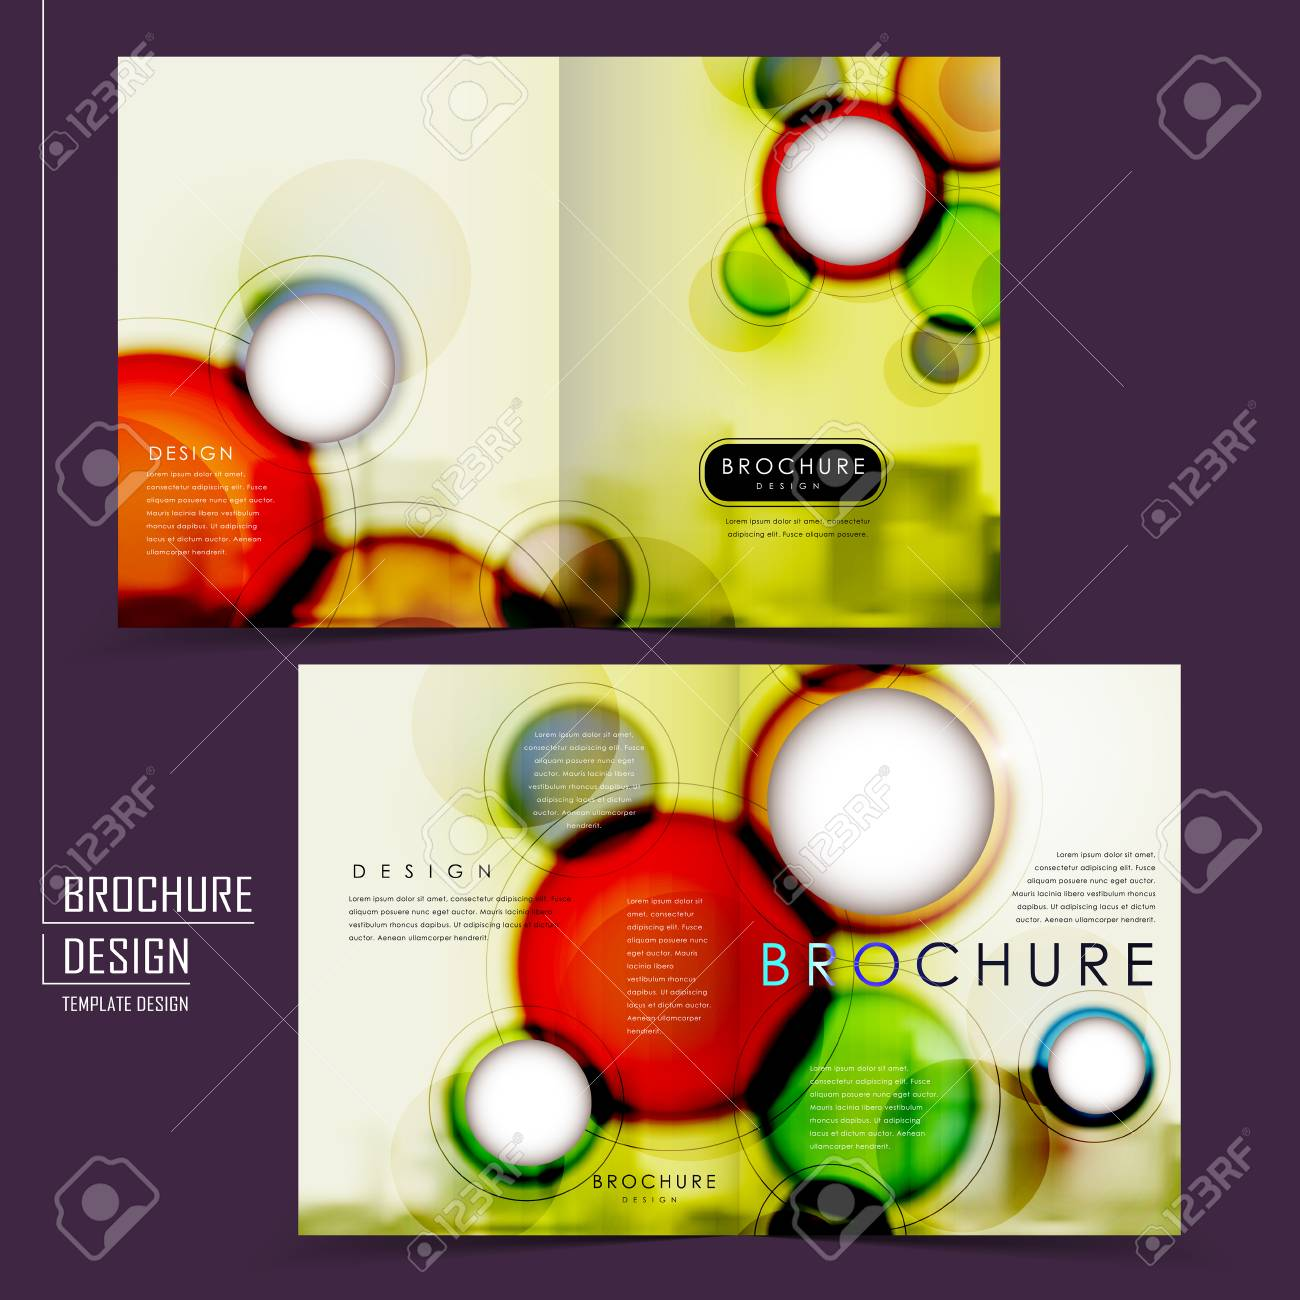 half fold brochure template design with colorful blurred background